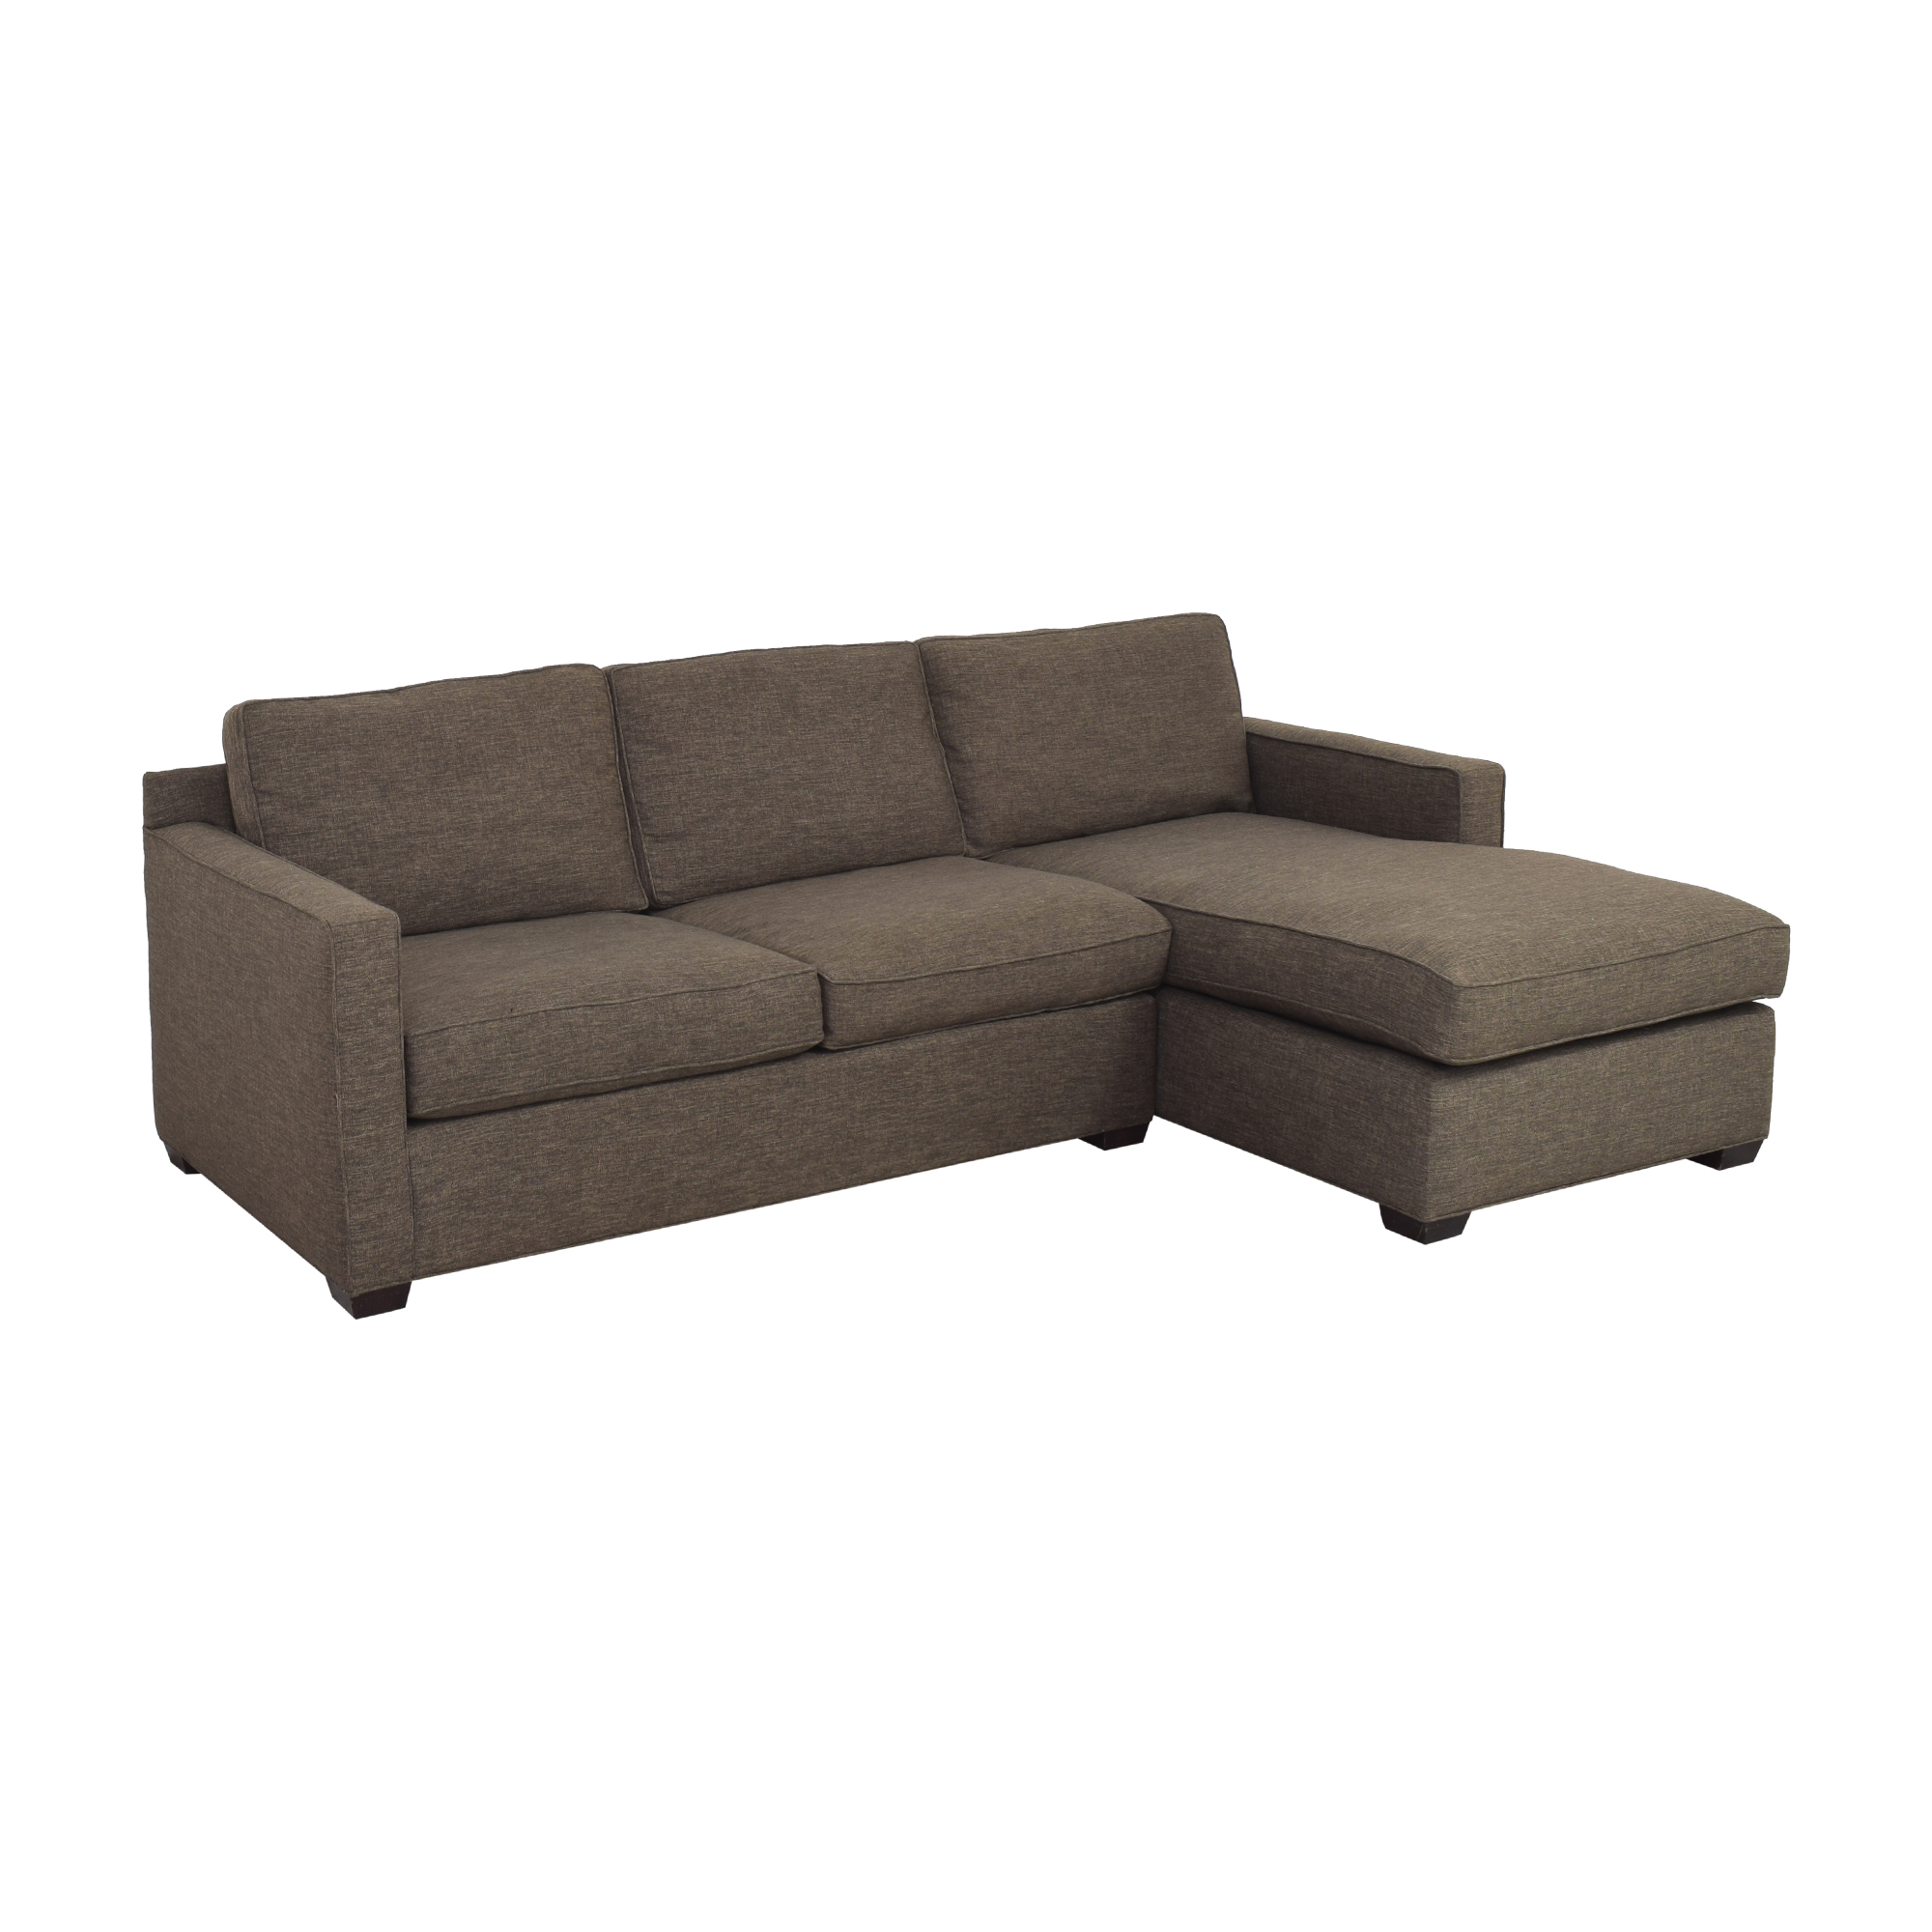 Crate & Barrel Crate & Barrel Sectional Sofa with Chaise Sofas